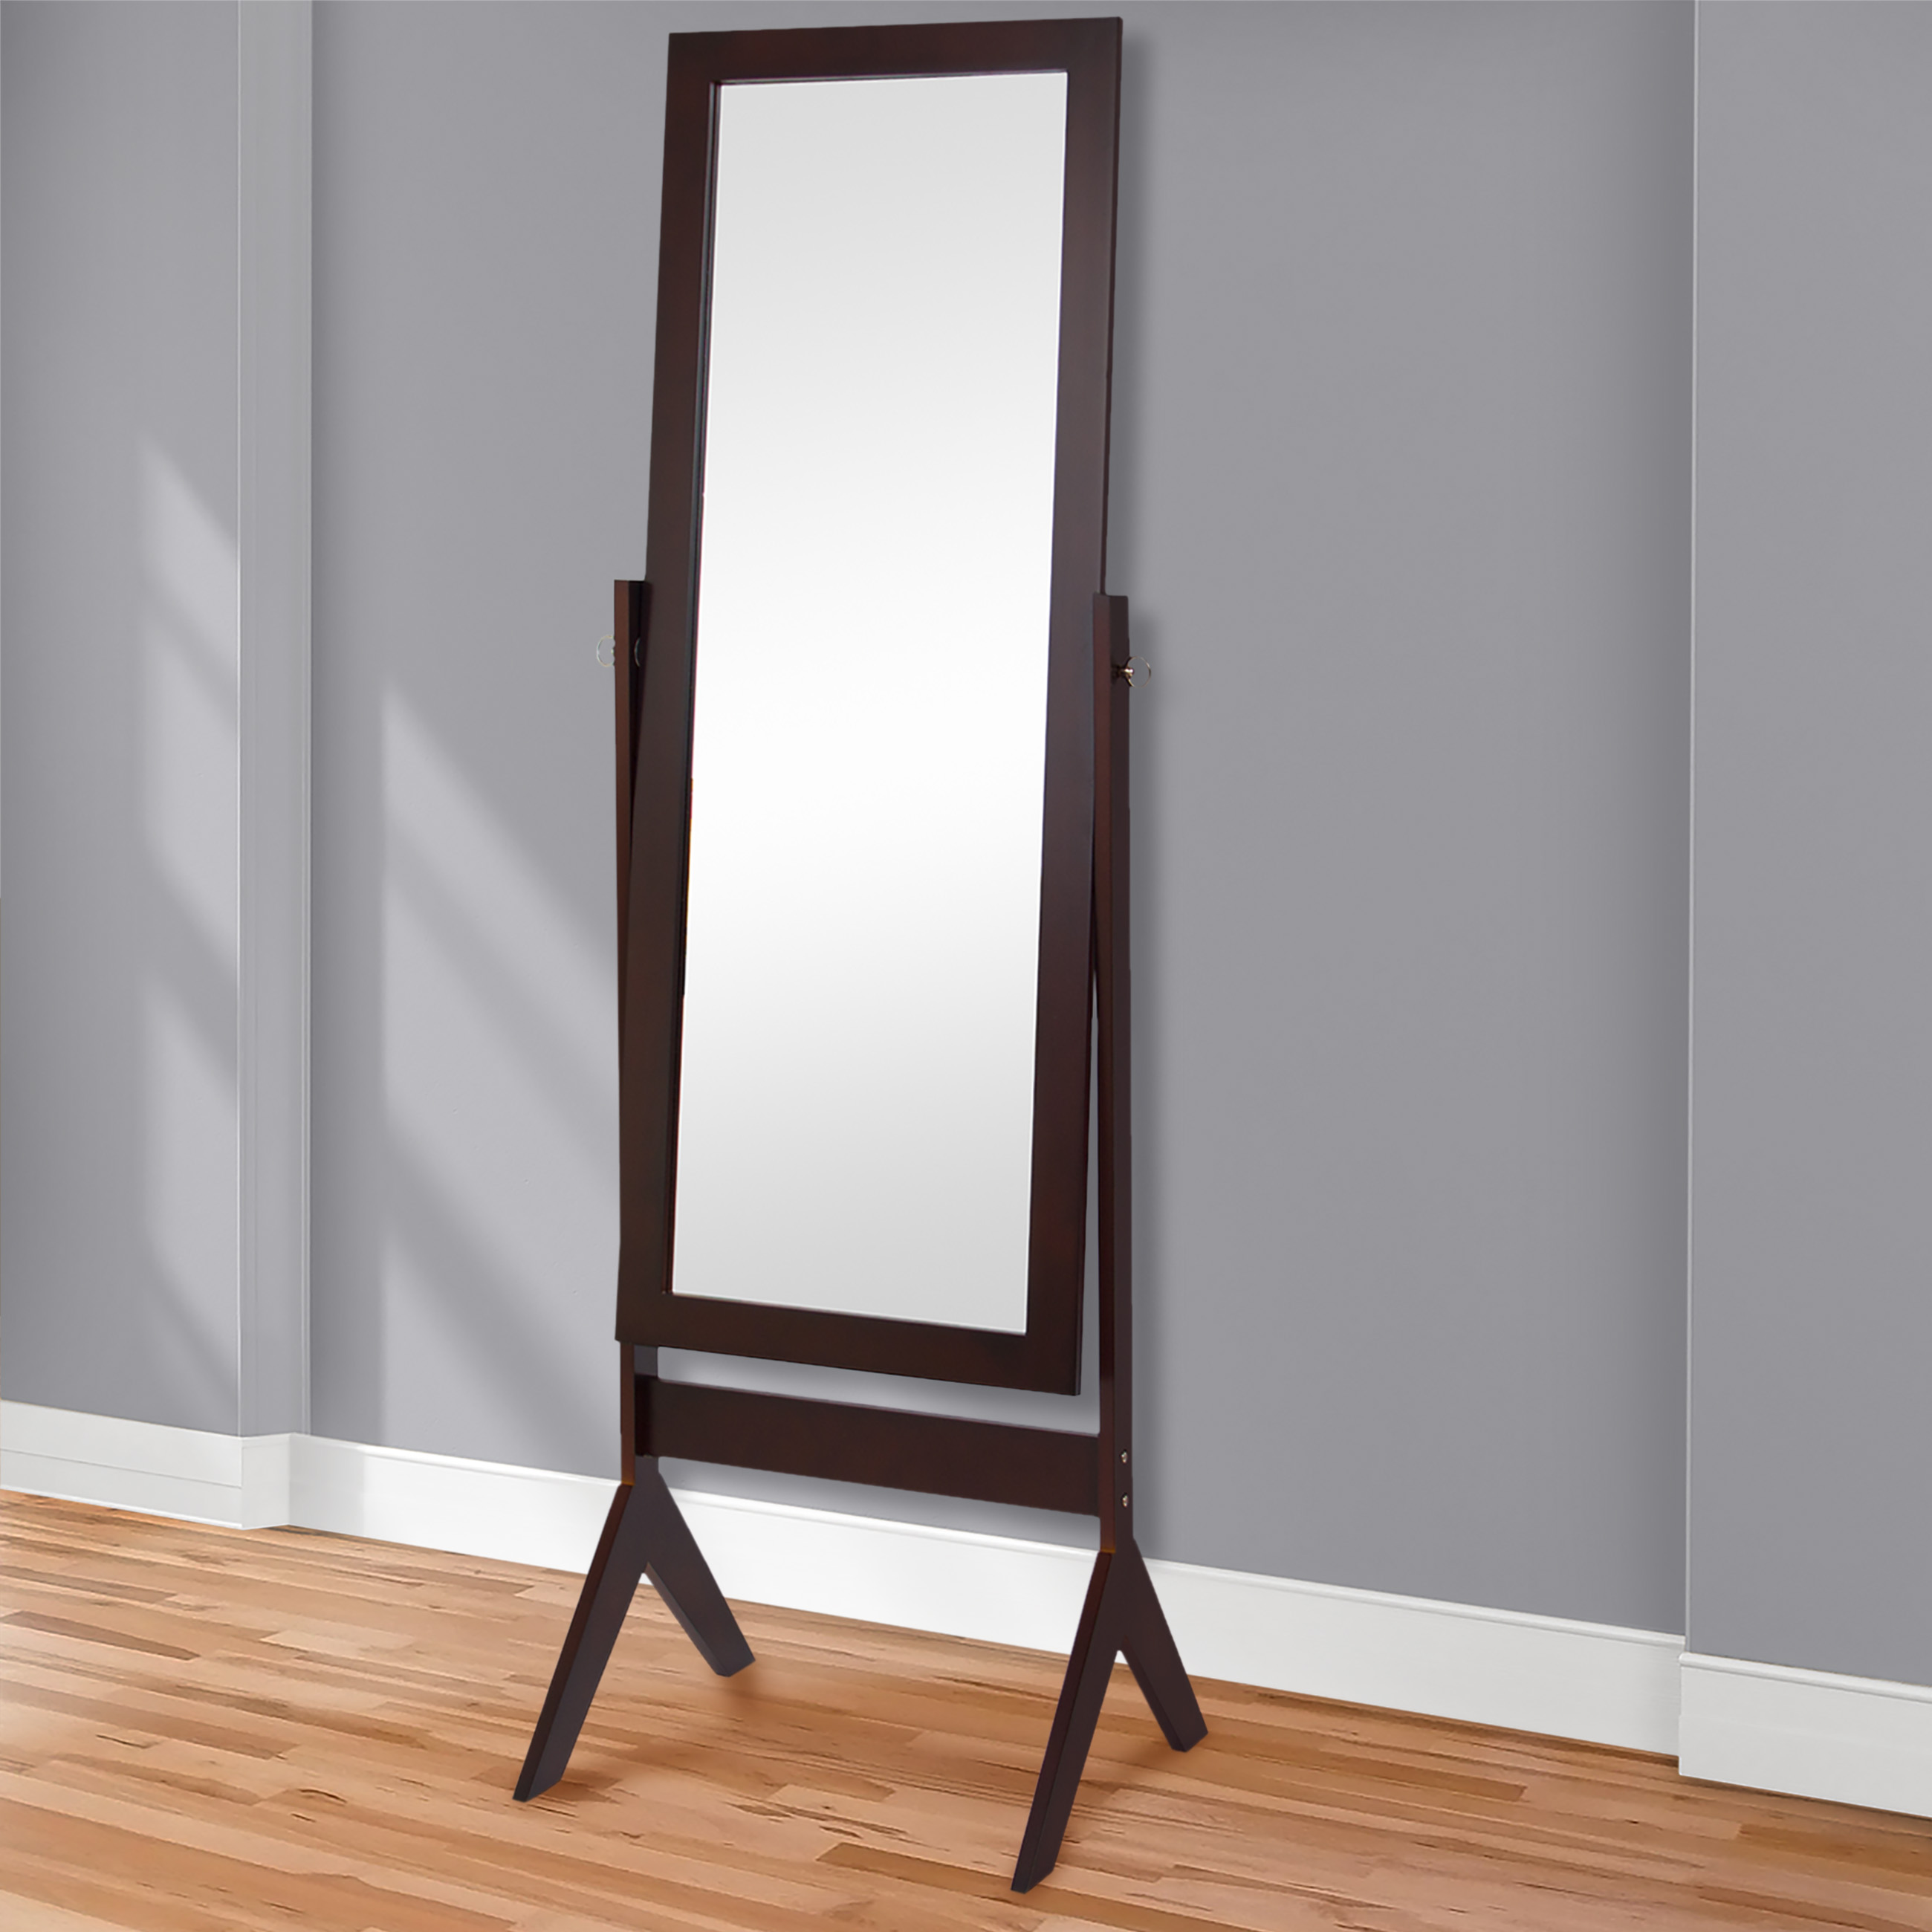 Best Choice Products Cheval Floor Mirror Bedroom Home Furniture- Espresso Brown by